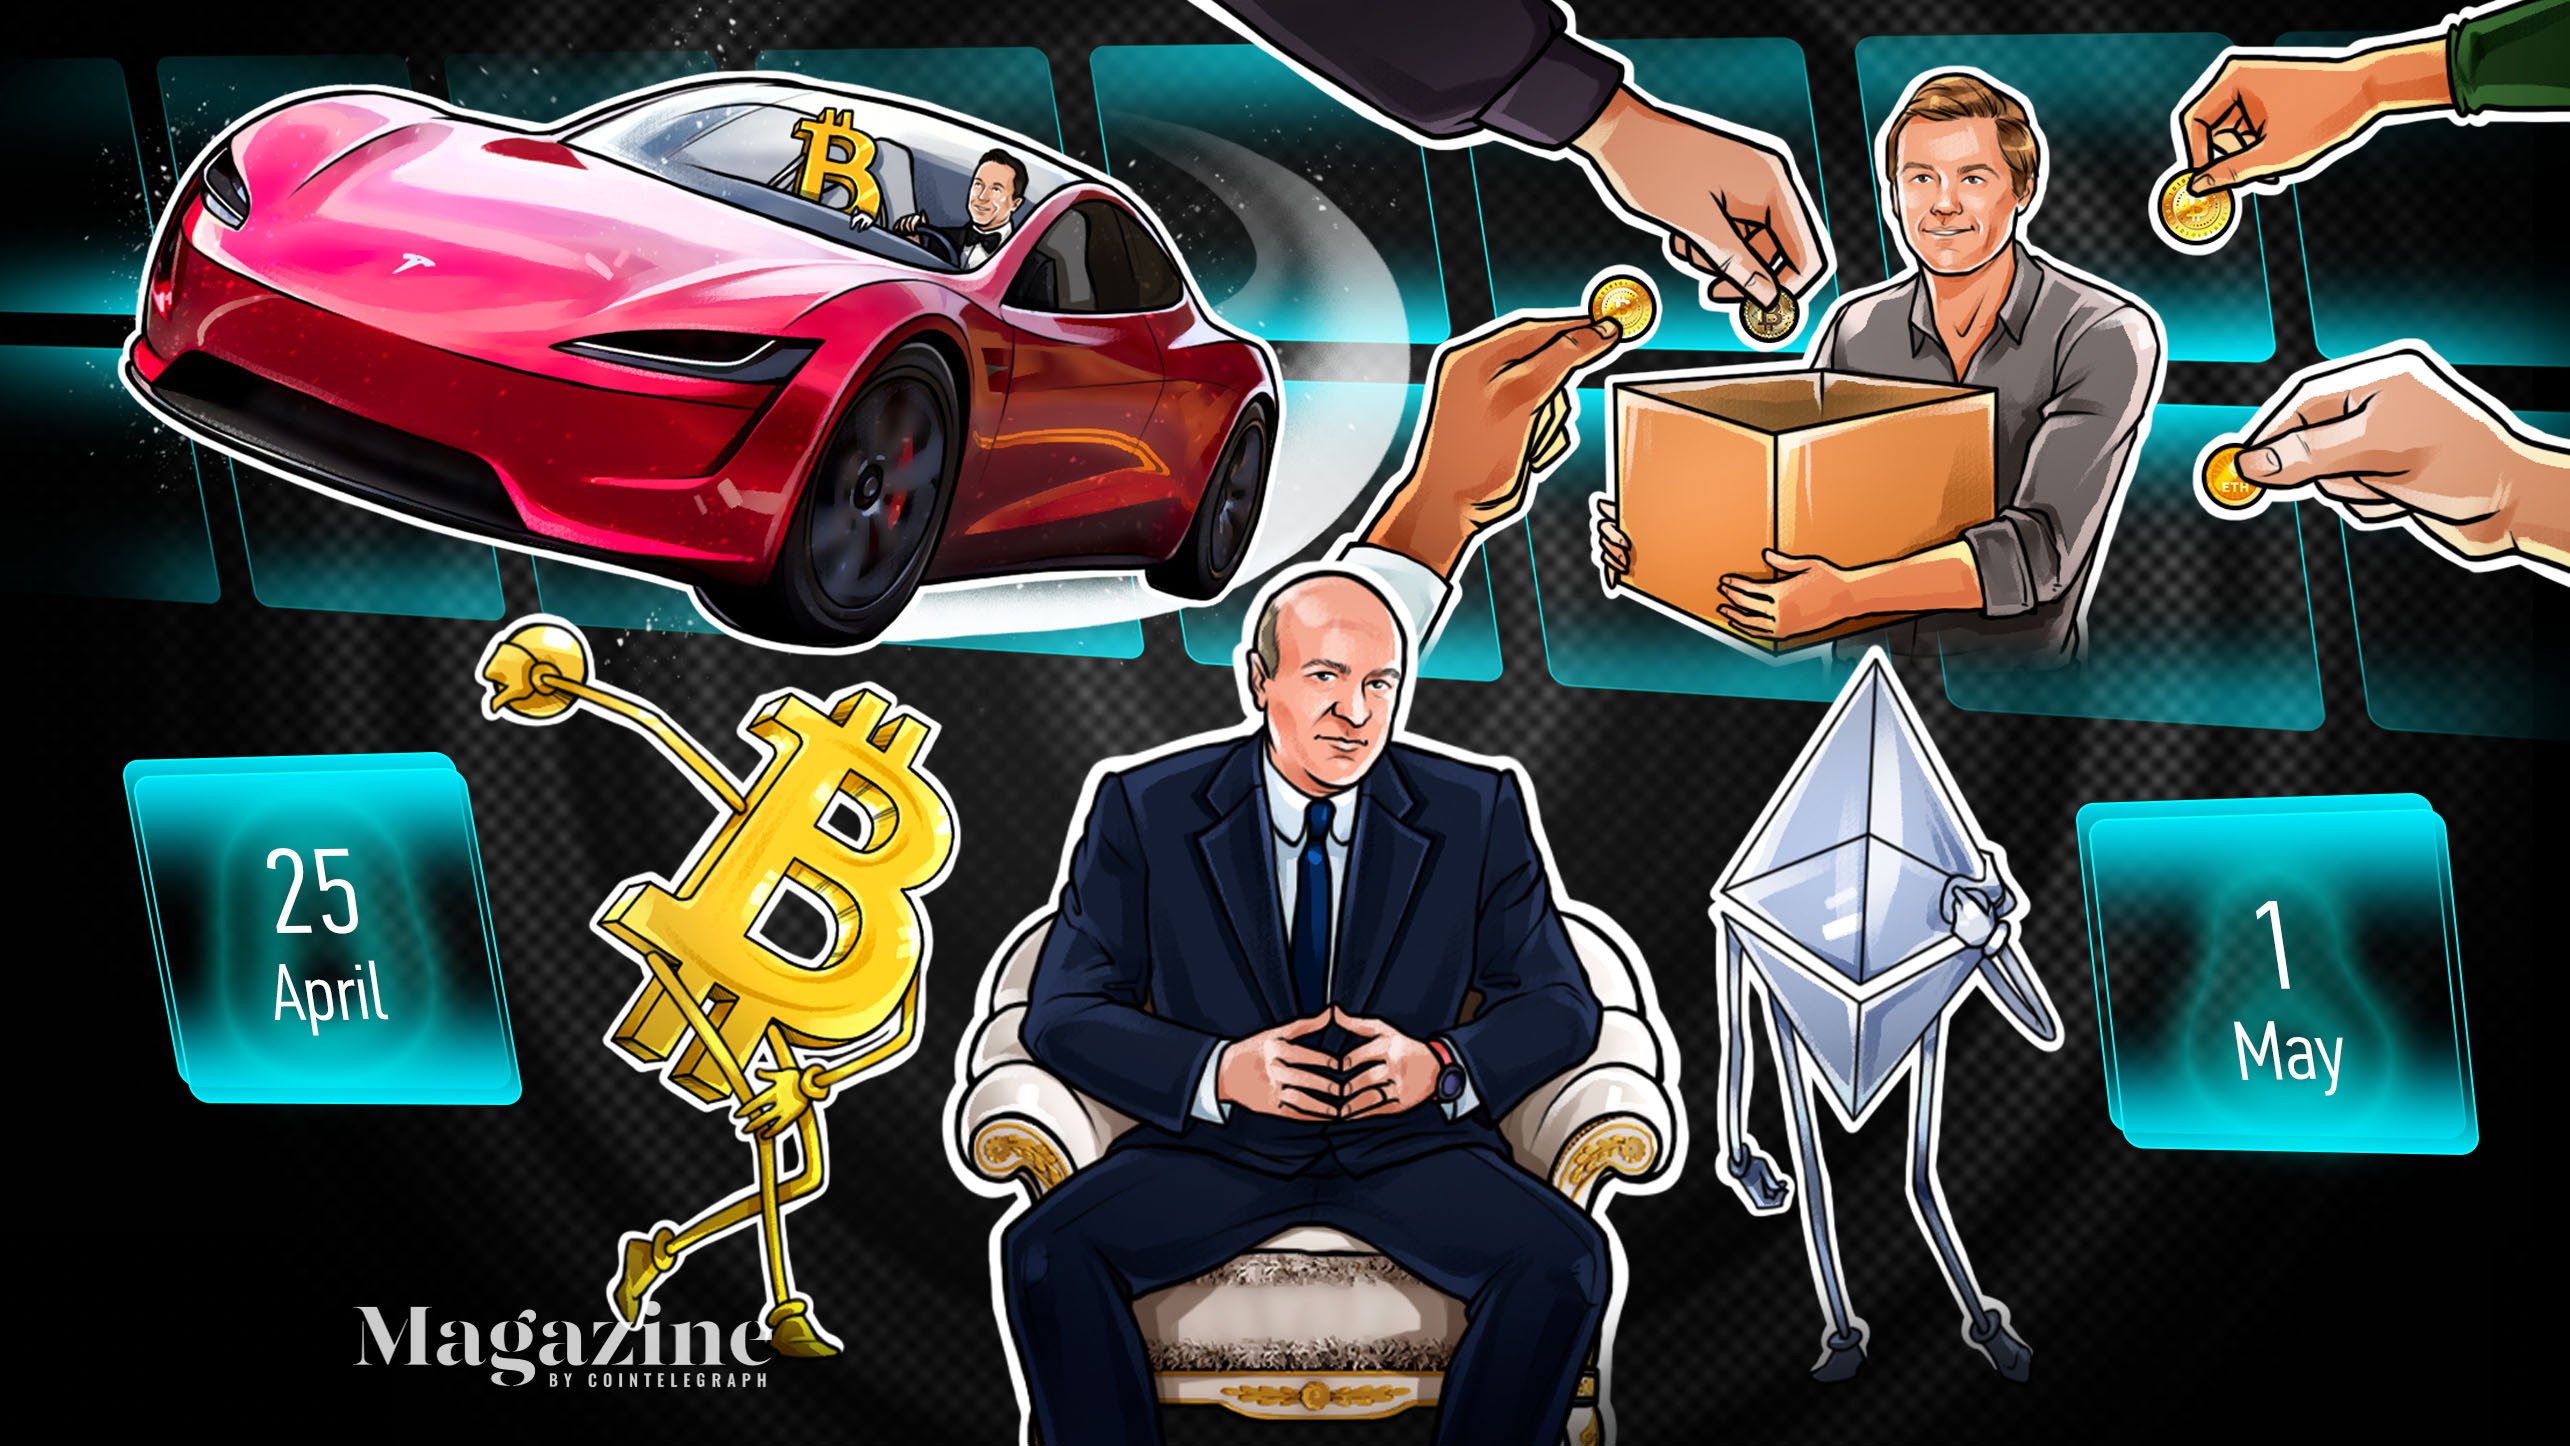 Bitcoin's grim close, Tesla's crypto sell-offs, Ether's jaw-dropping surge: Hodler's Digest, April 25–May 1